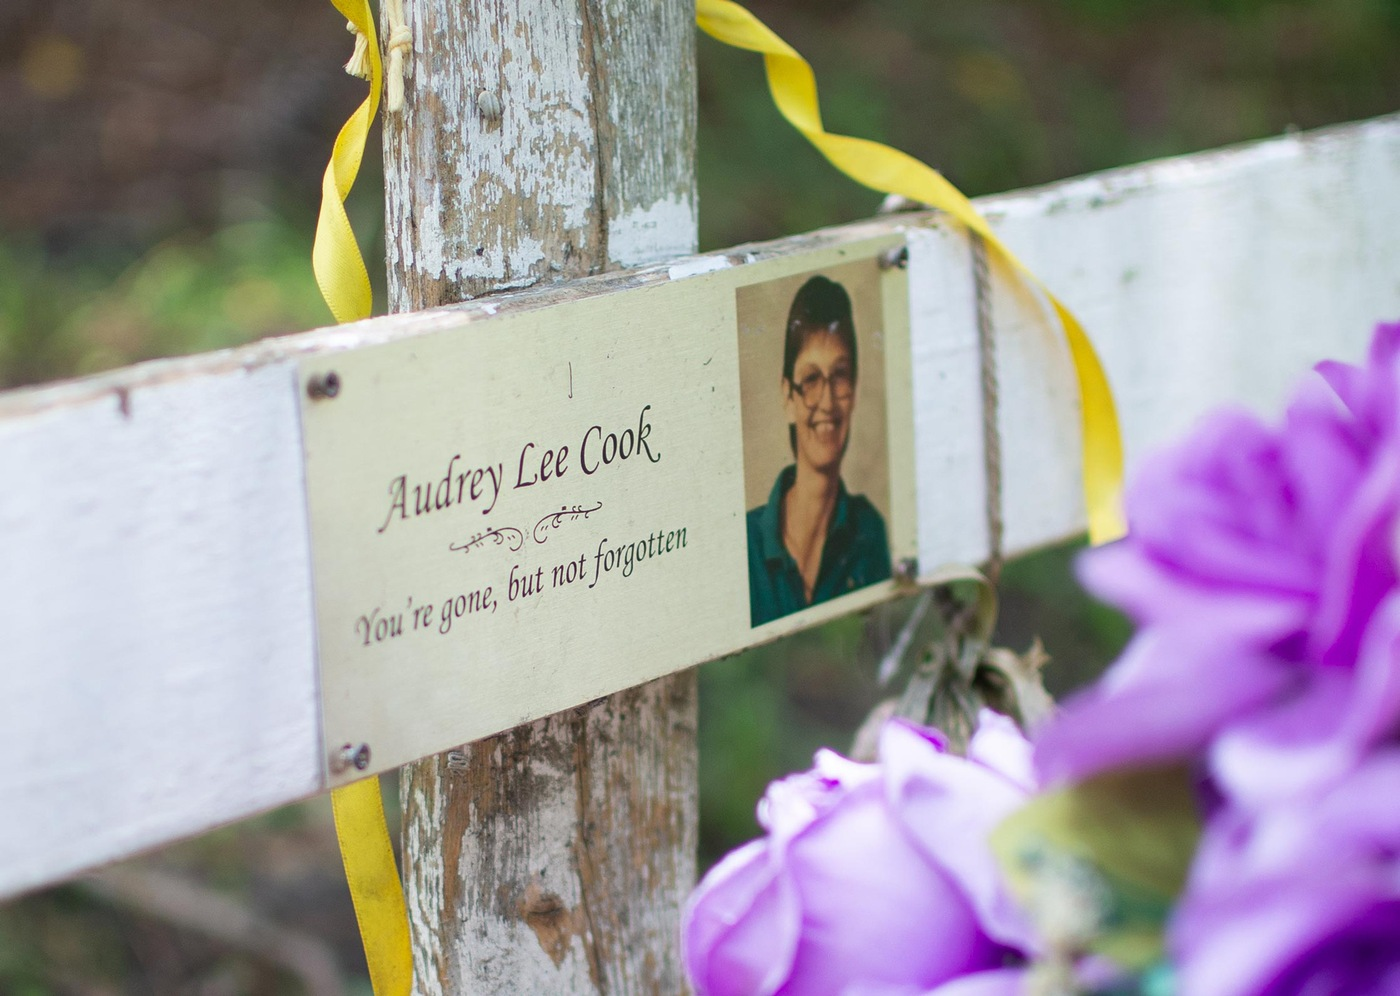 Killing Fields: Marker for Audrey Lee Cook